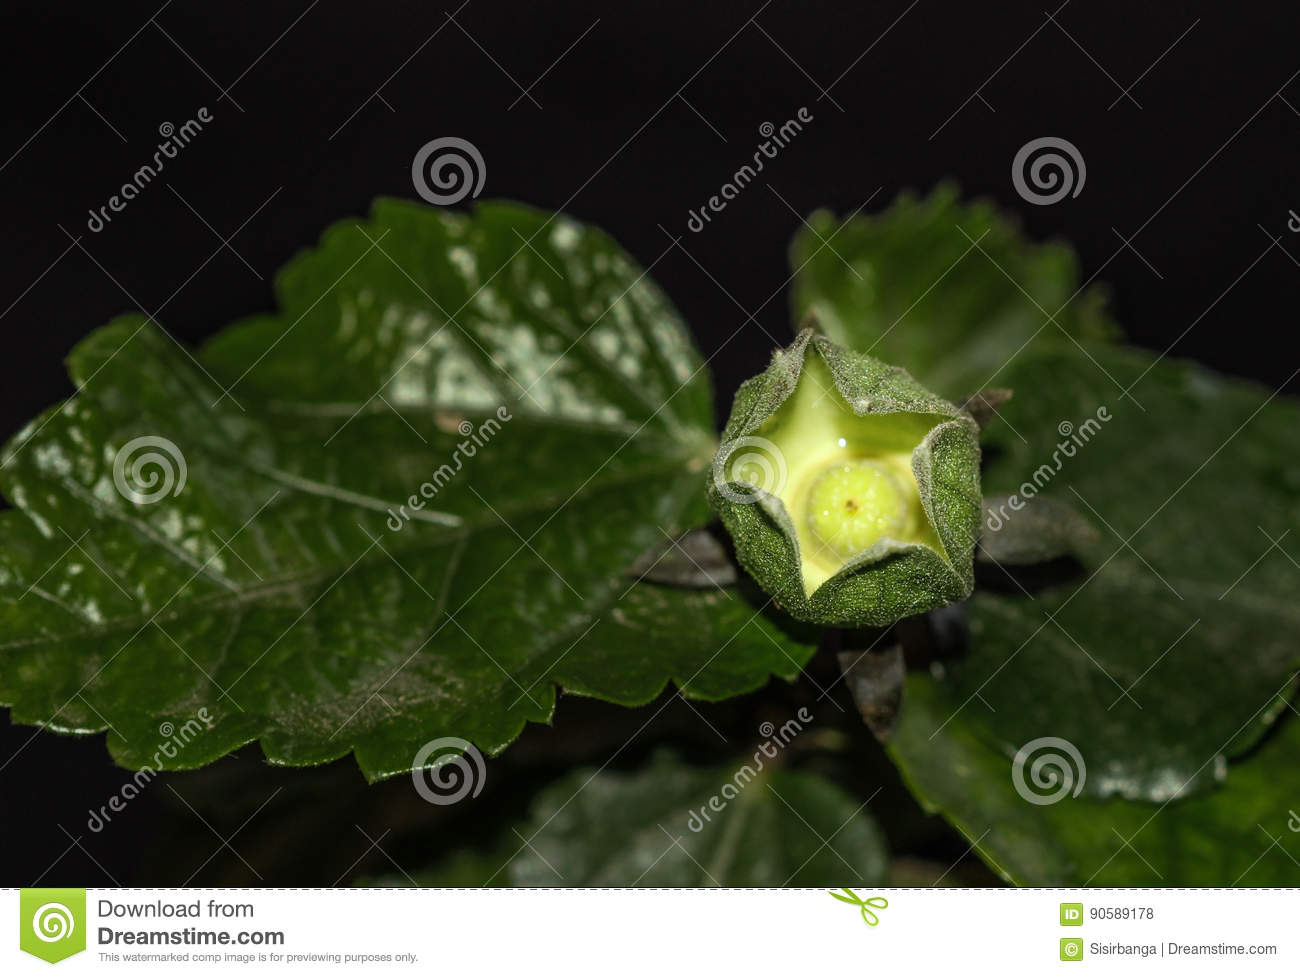 Hibiscus Calyx With Ovary Stock Photo Image Of Complete 90589178